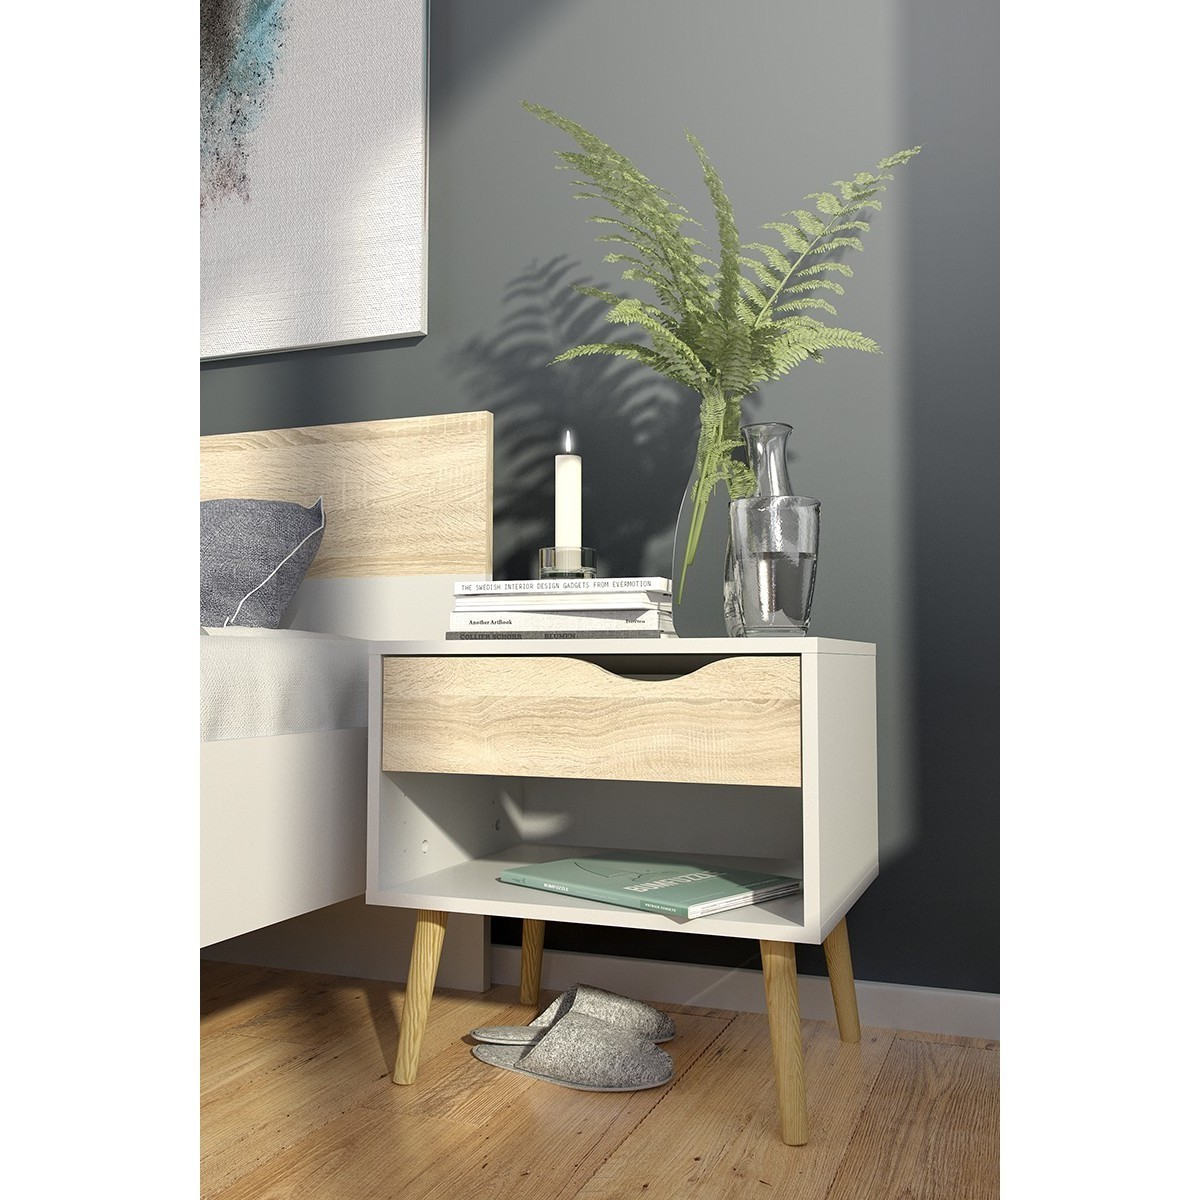 TVILUM-SCANBIRK Diana Wood 1-drawer Nightstand (White/Bla...